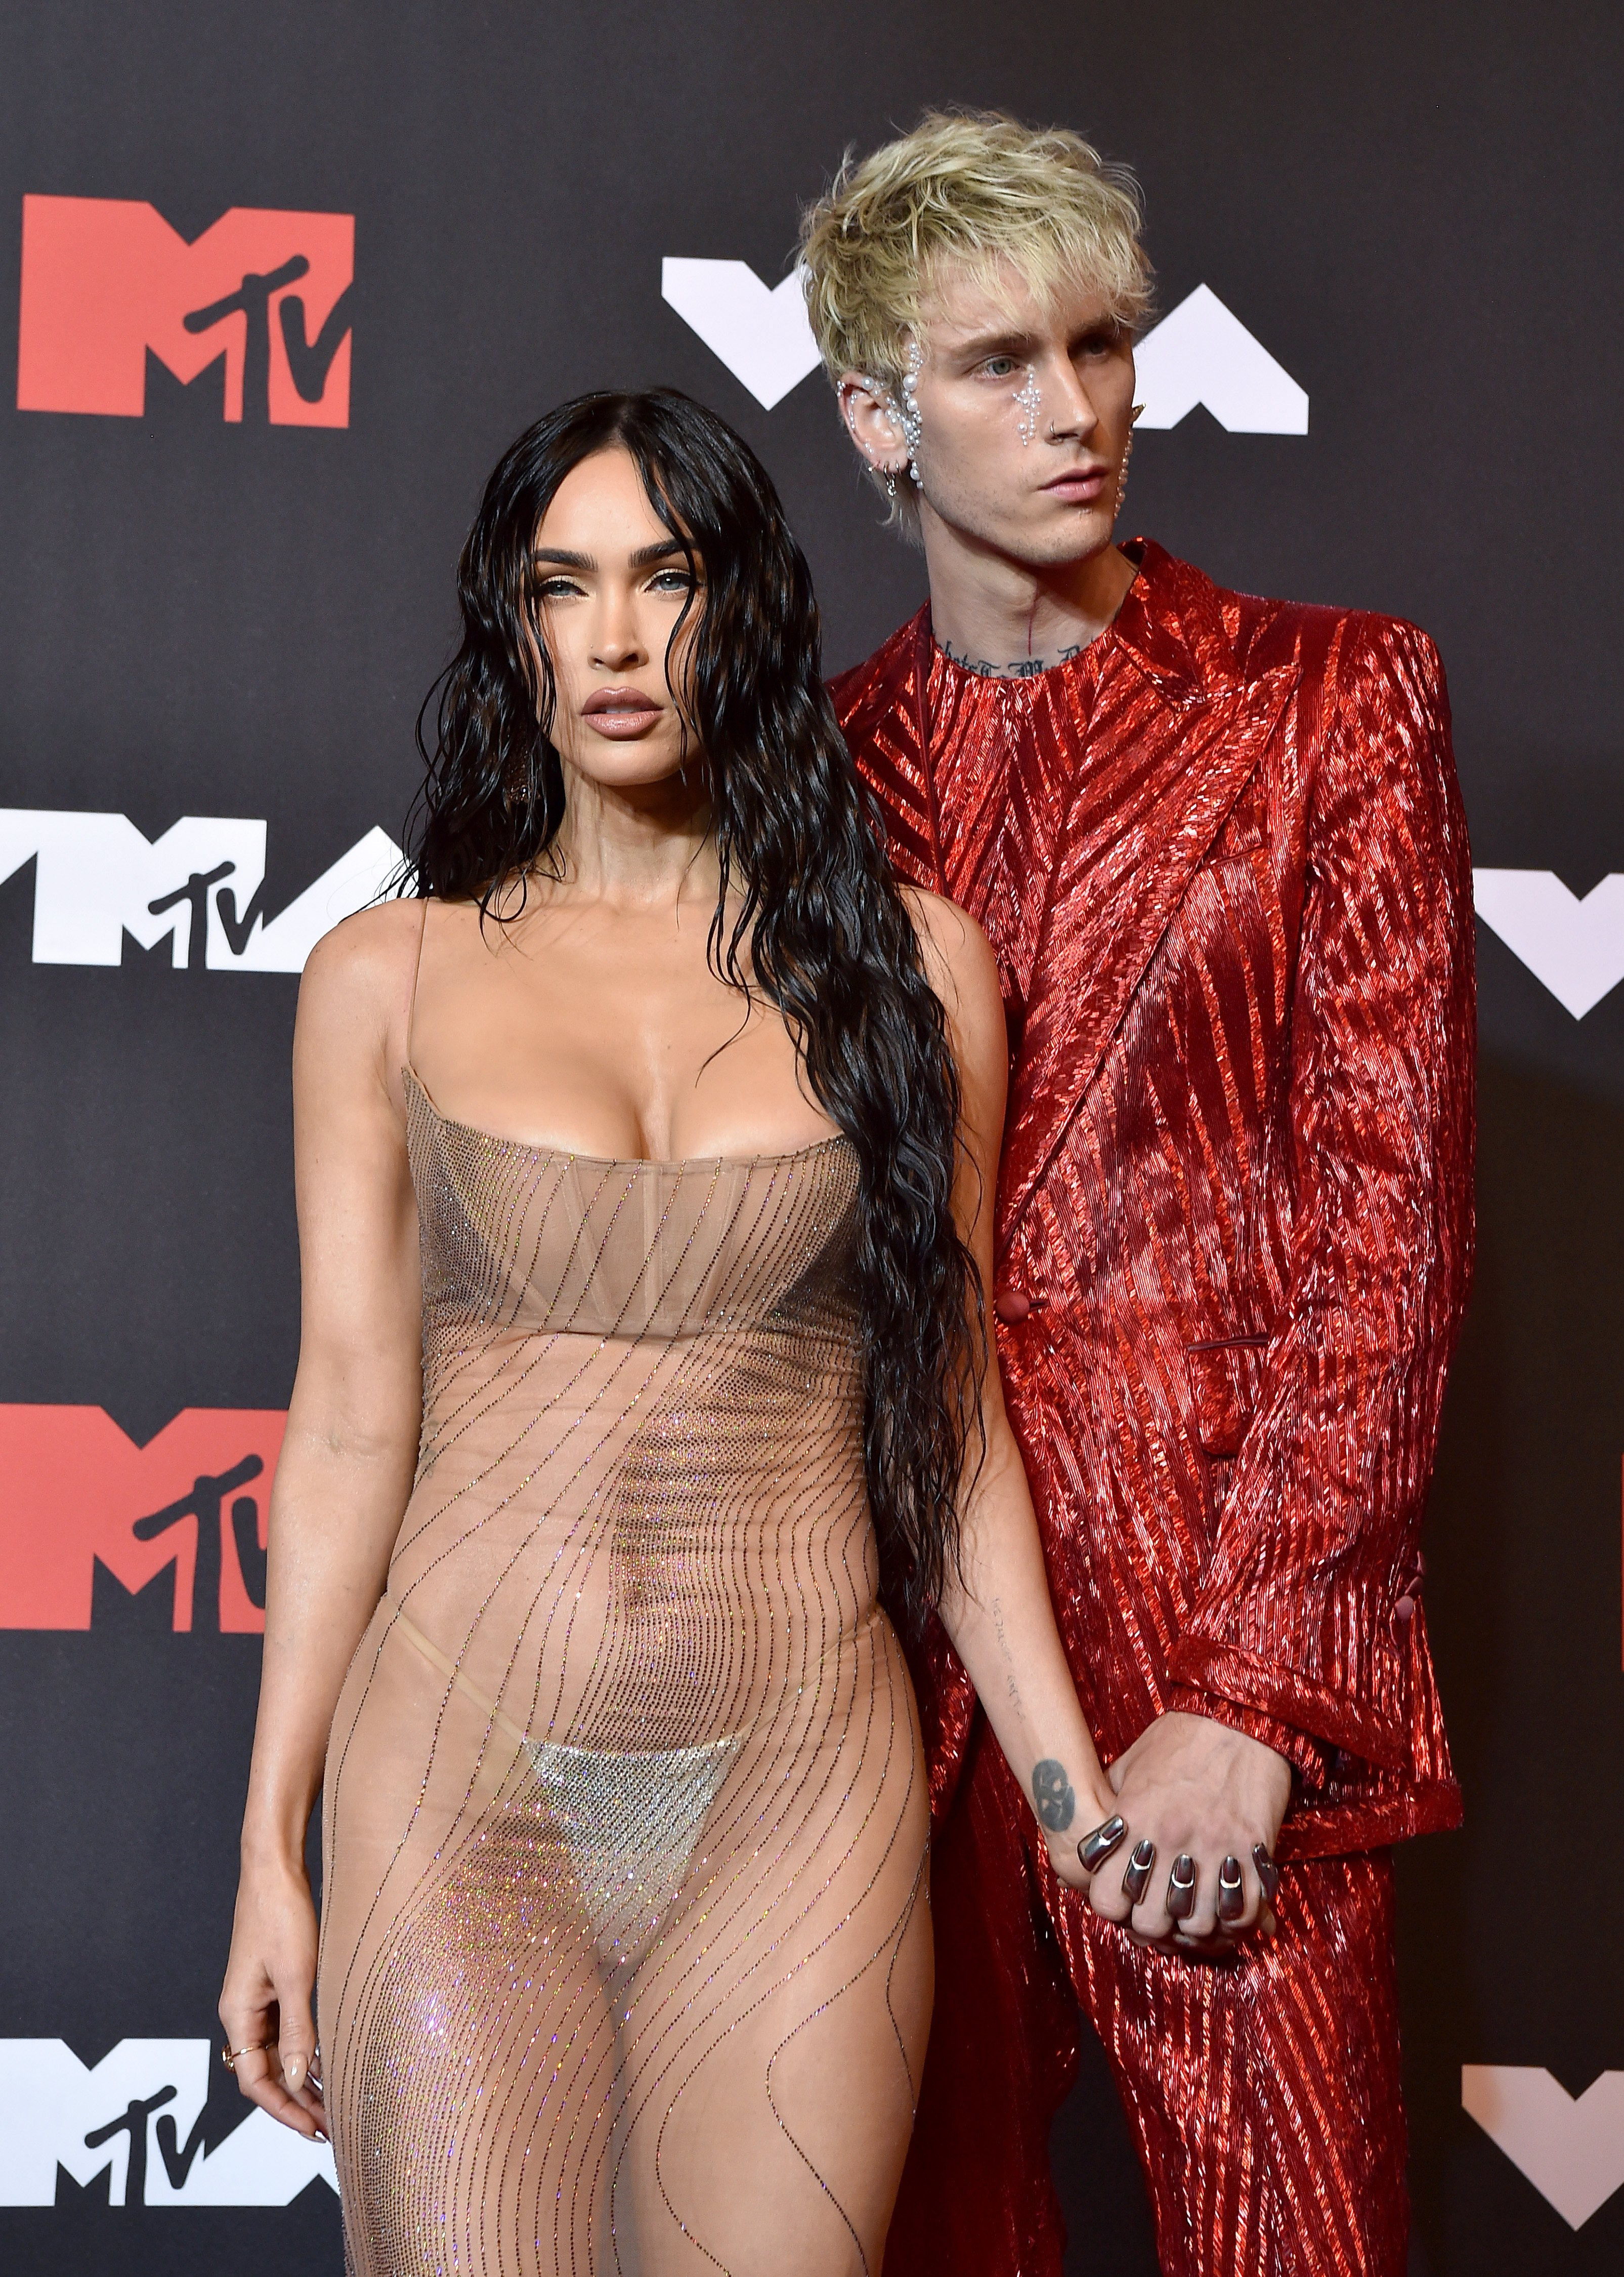 Megan Fox and Machine Gun Kelly at the 2021 MTV Video Music Awards at Barclays Center on September 12, 2021 | Photo: Getty Images